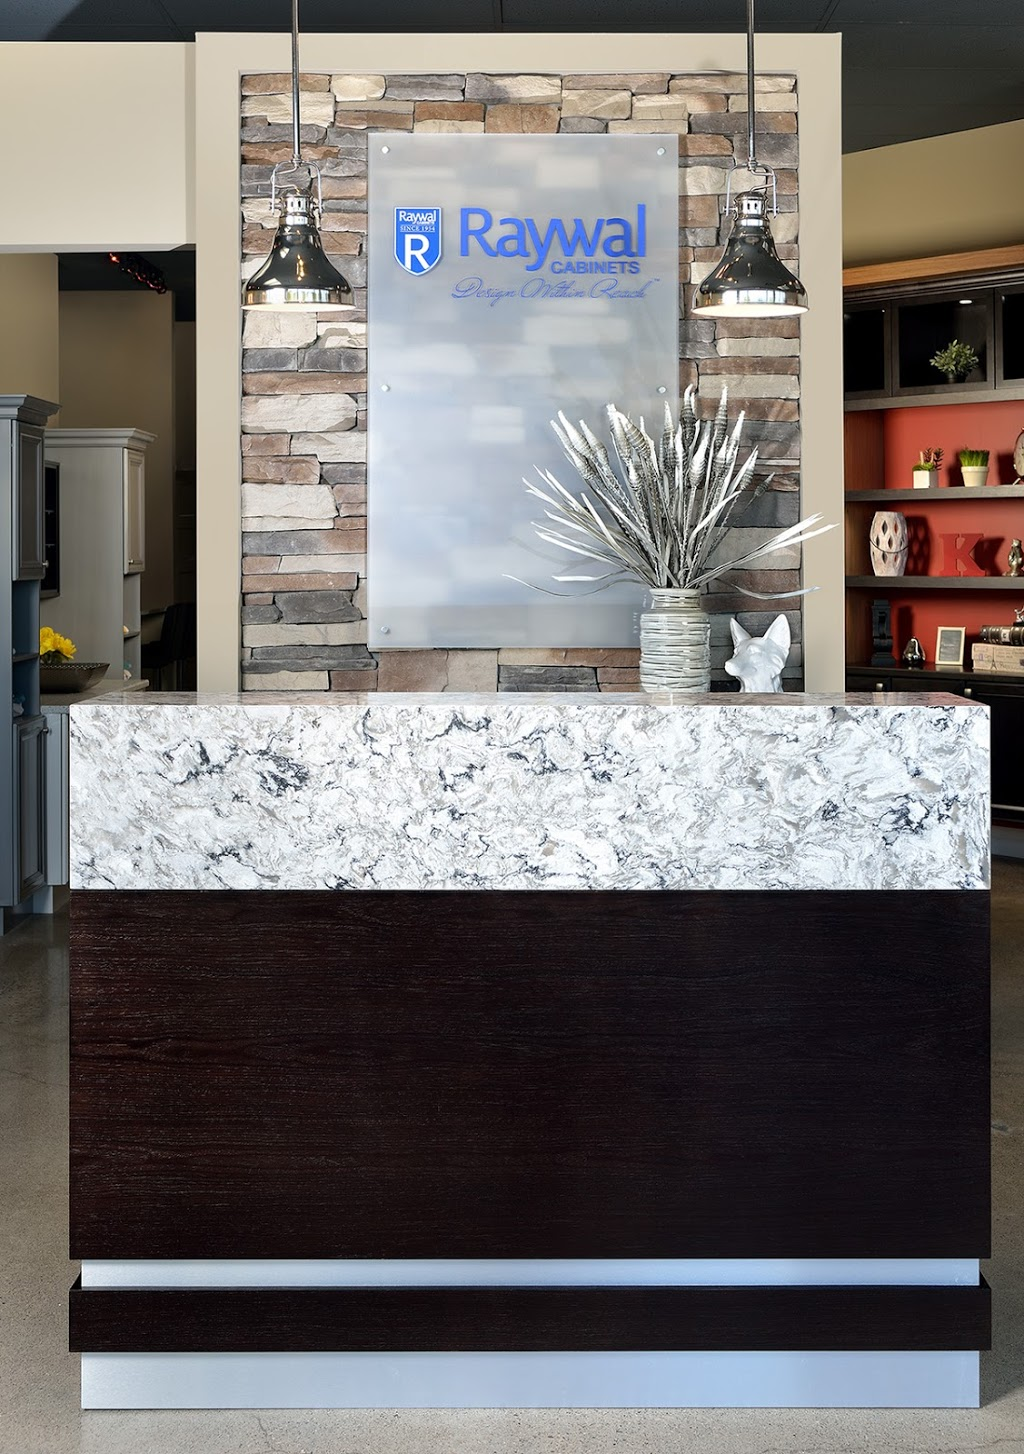 Raywal Cabinets | point of interest | b, 45 Sportsworld Dr, Kitchener, ON N2P 2J5, Canada | 5196539220 OR +1 519-653-9220